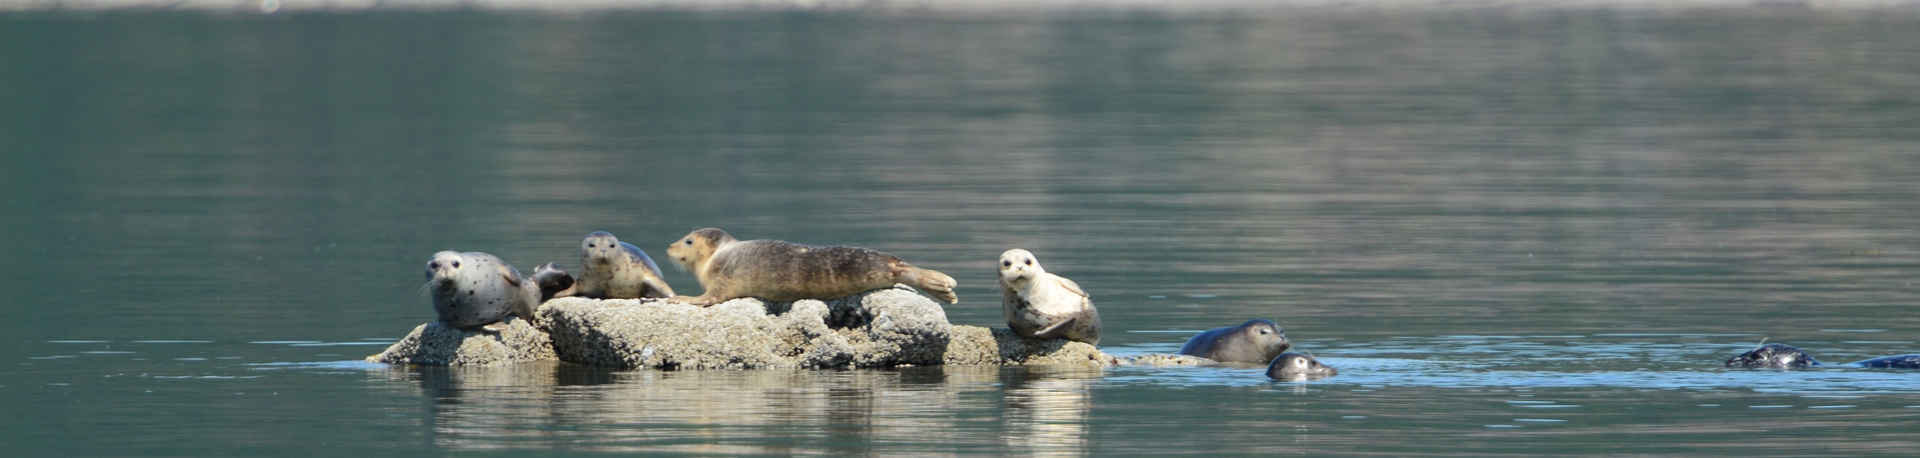 five seals sunning and swimming around a small rock in the water